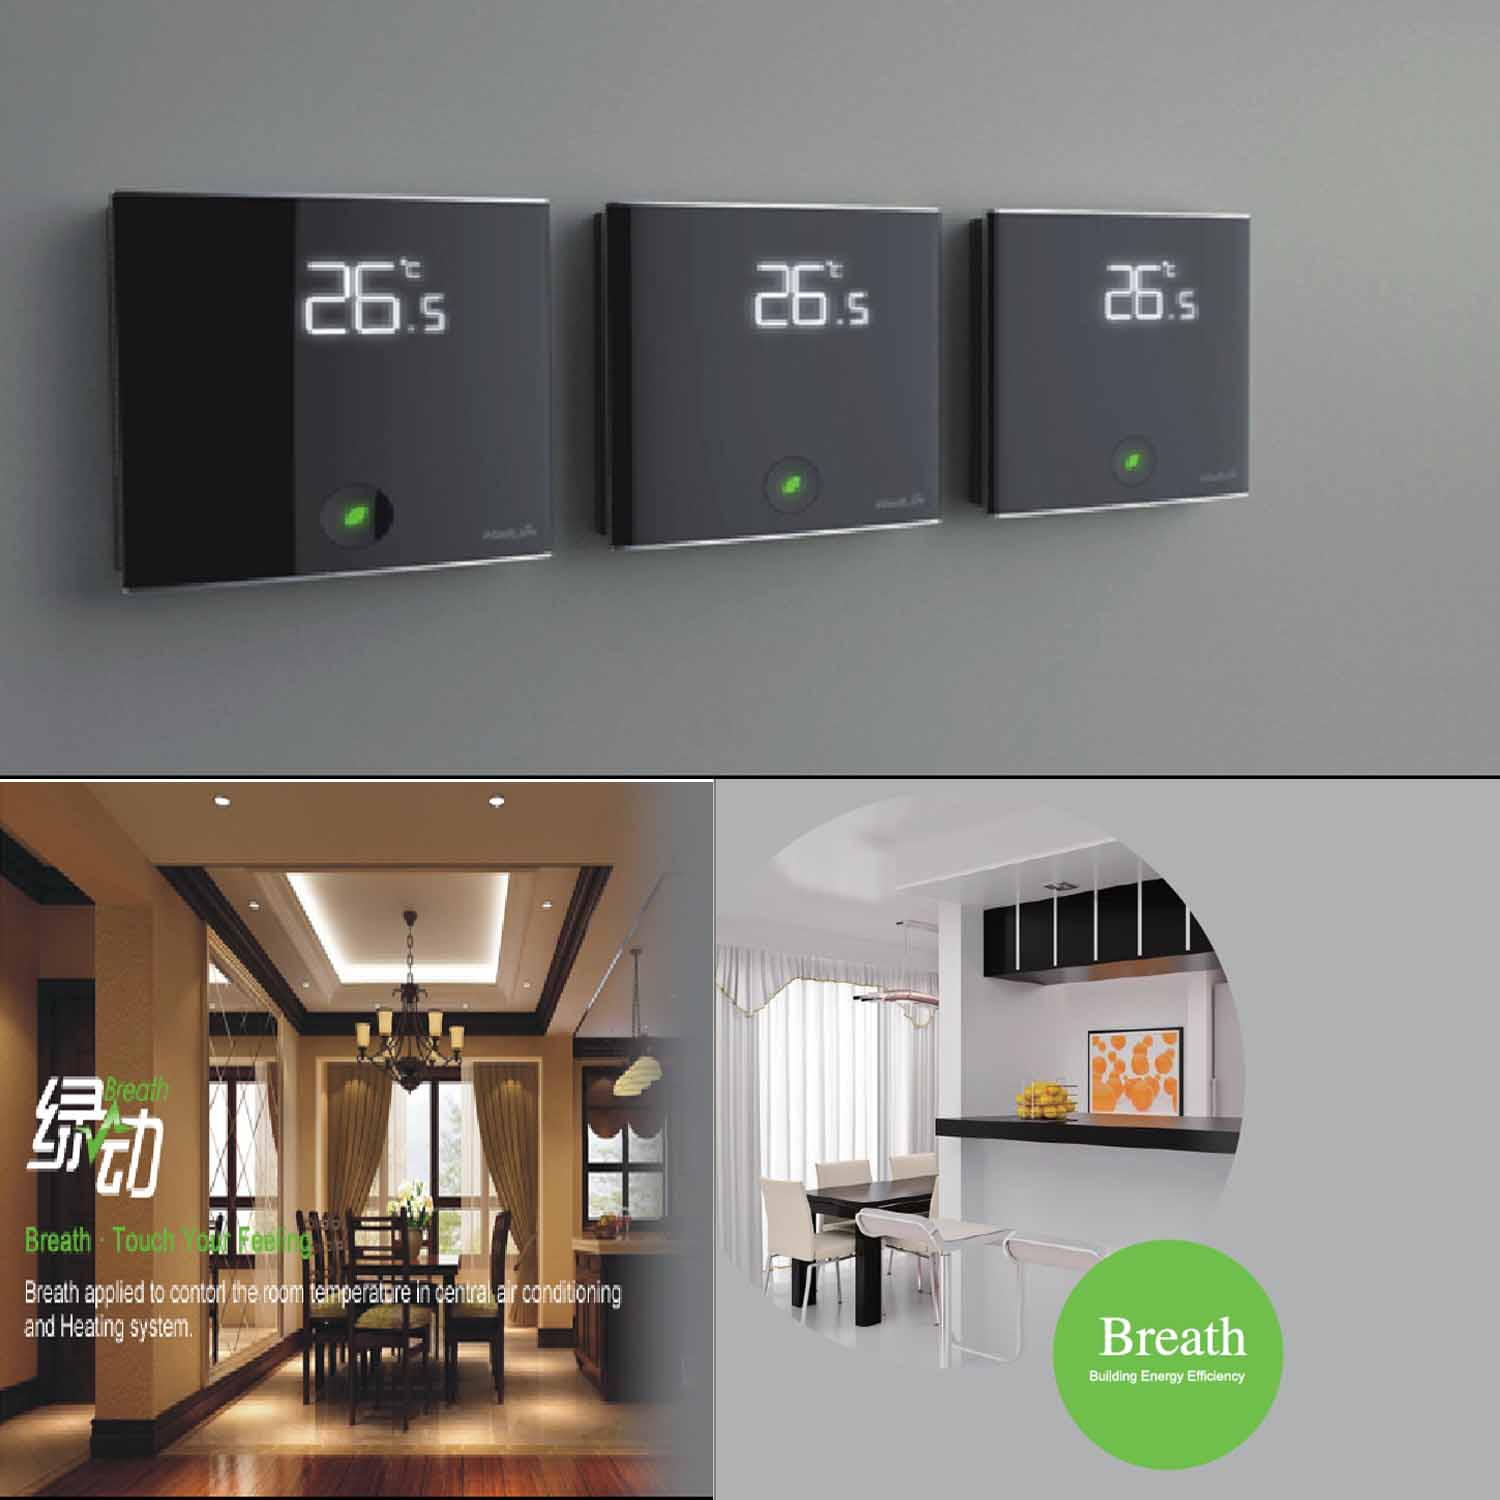 touch screen fu bodenheizung thermostat hl2028 hvac. Black Bedroom Furniture Sets. Home Design Ideas